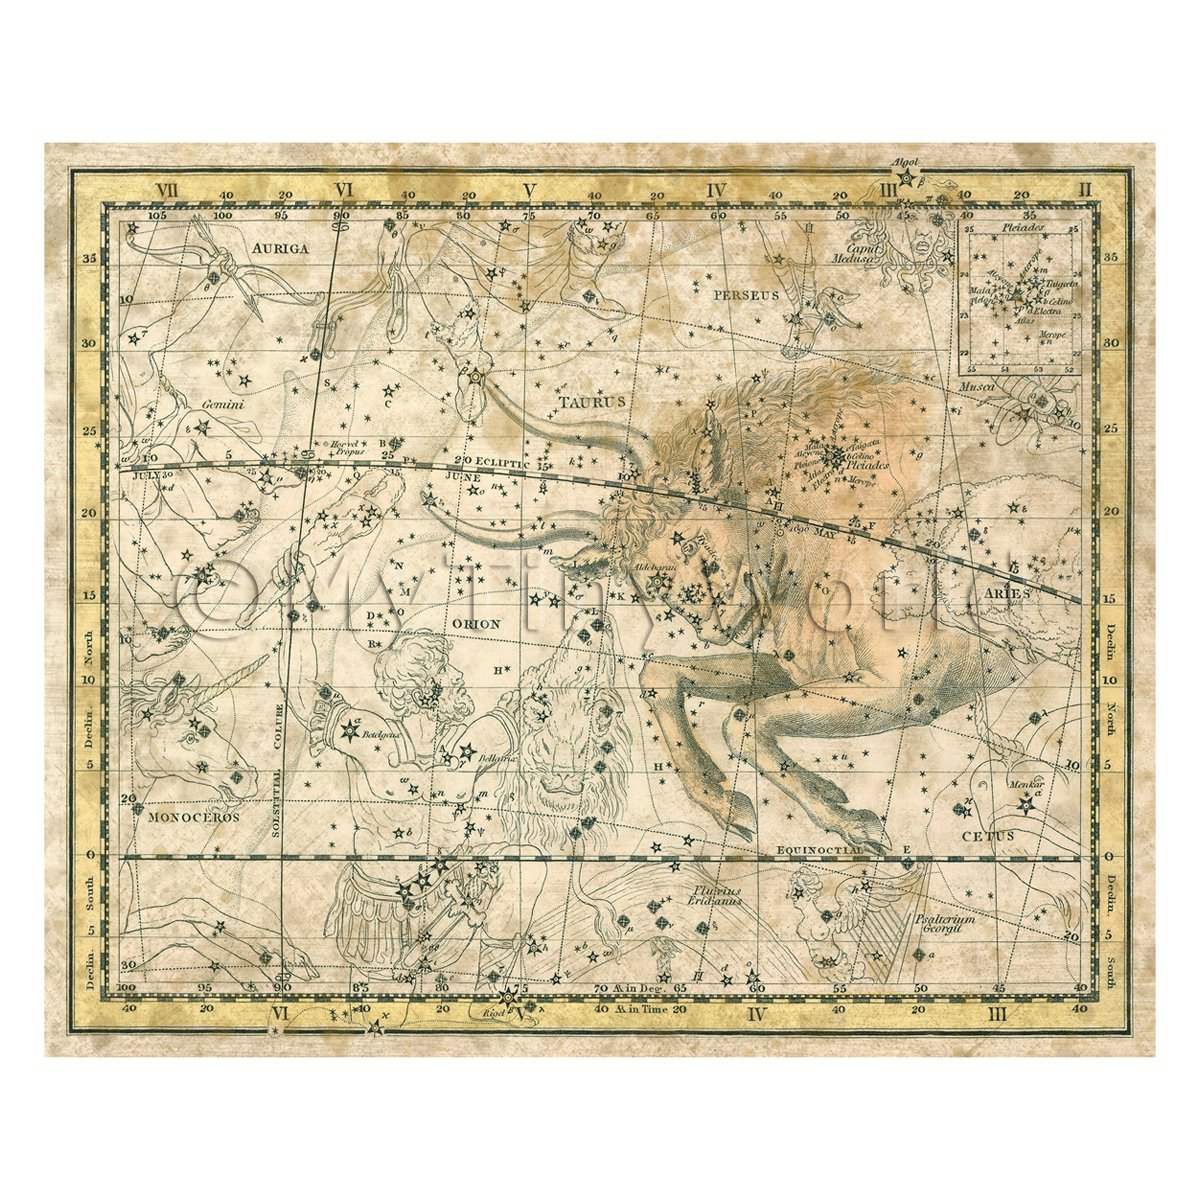 Dolls House Miniature Aged 1800s Star Map With Taurus And Orion